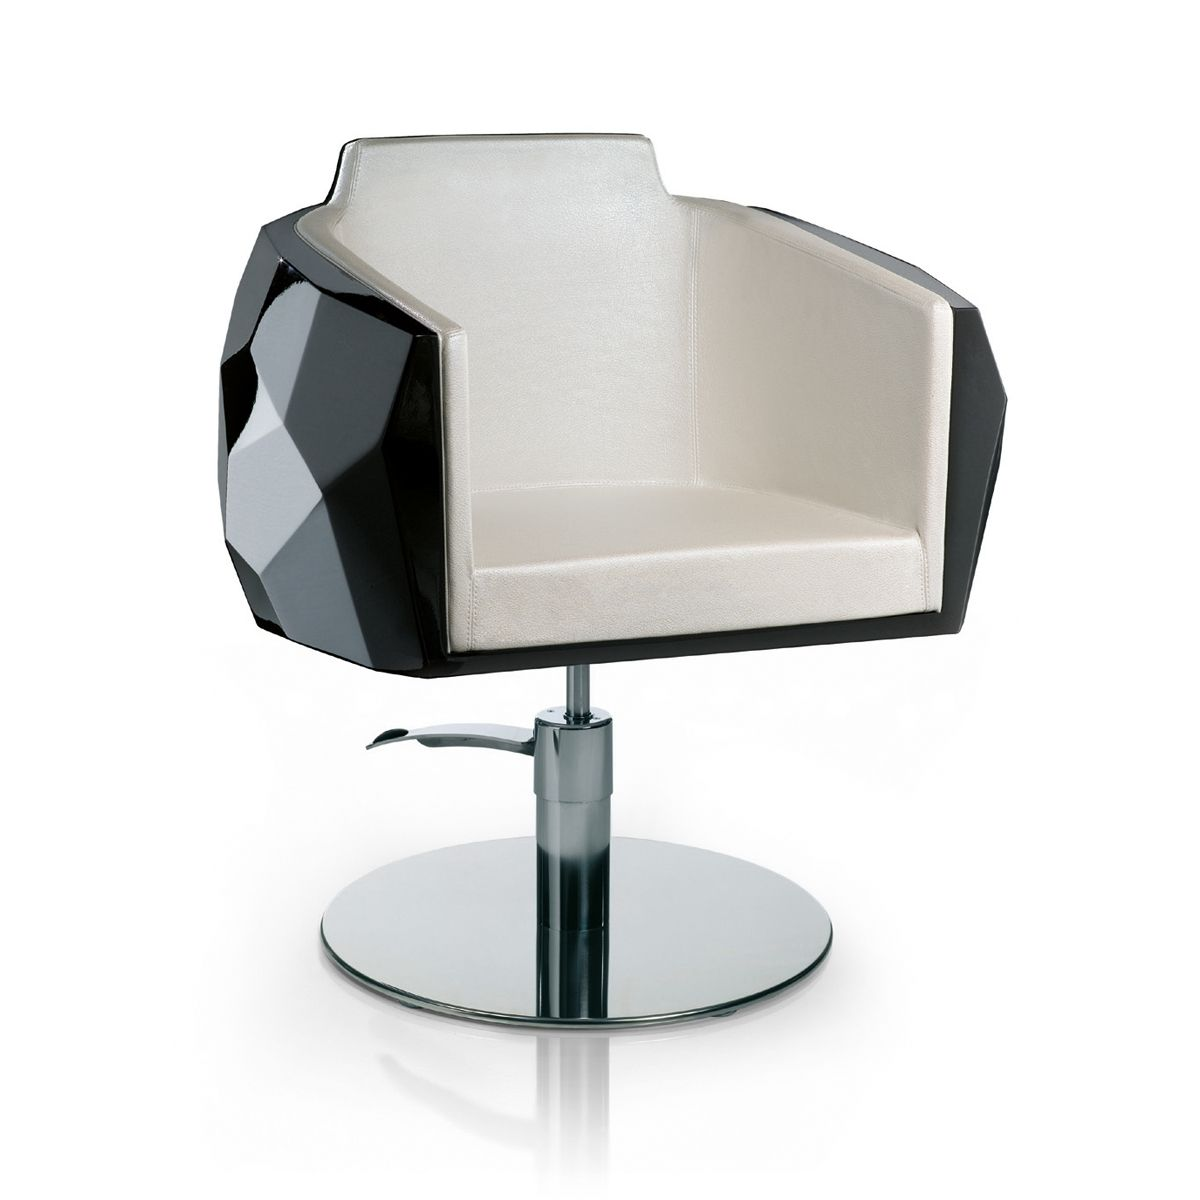 Crystalcoiff - Styling Salon Chairs  sc 1 st  Beautydesign & Crystalcoiff - Styling Salon Chairs | Salon Equipment and Beauty ...